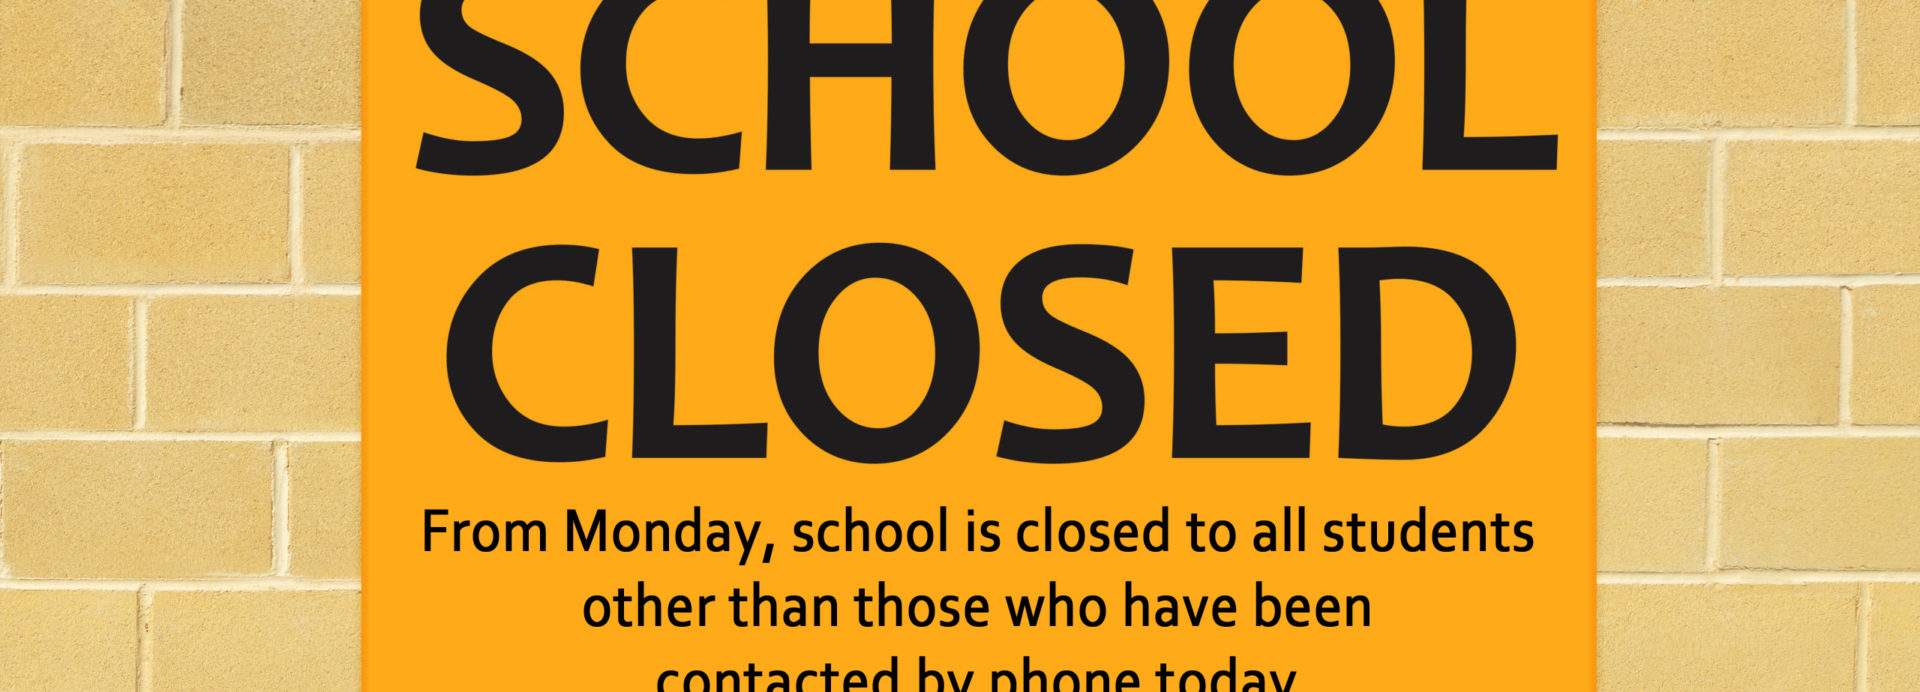 From Monday, school is closed to all students other than those who have been contacted by phone today.